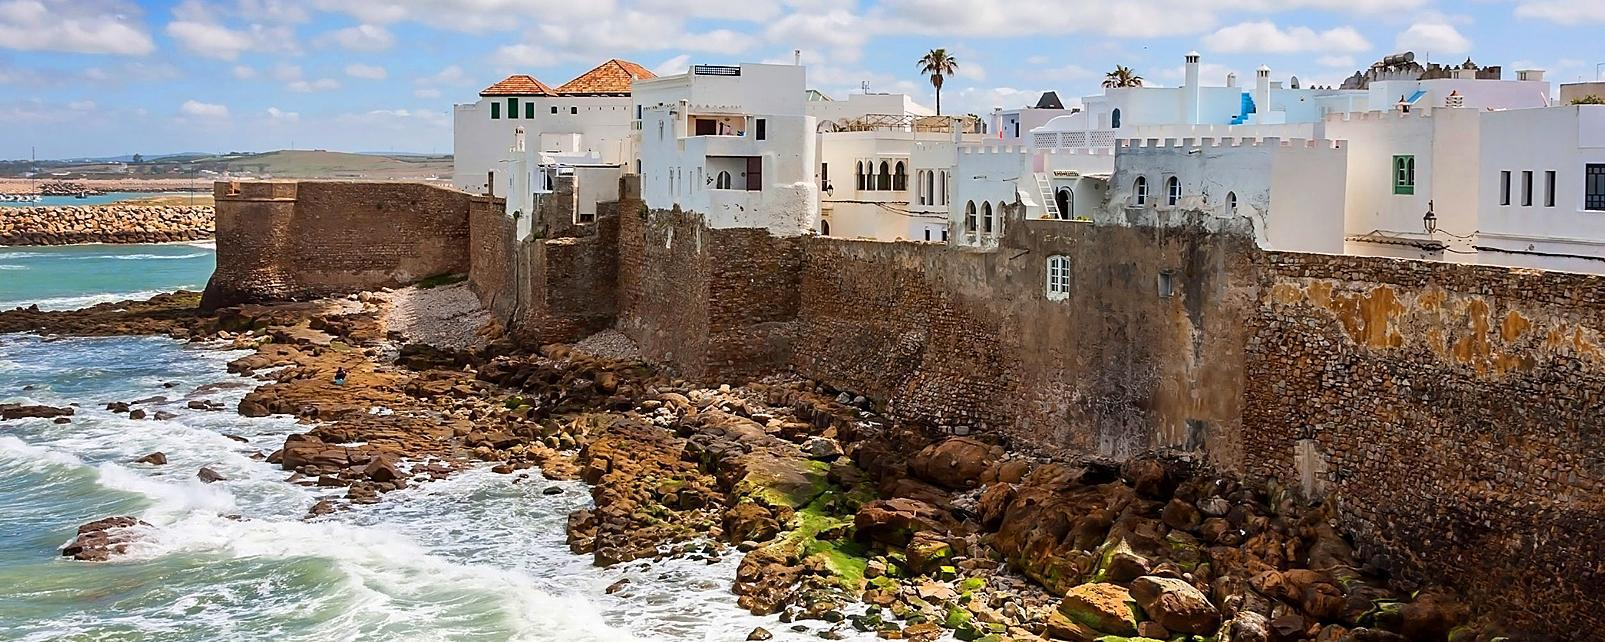 Travel To Asilah Morocco Asilah Travel Guide Easyvoyage